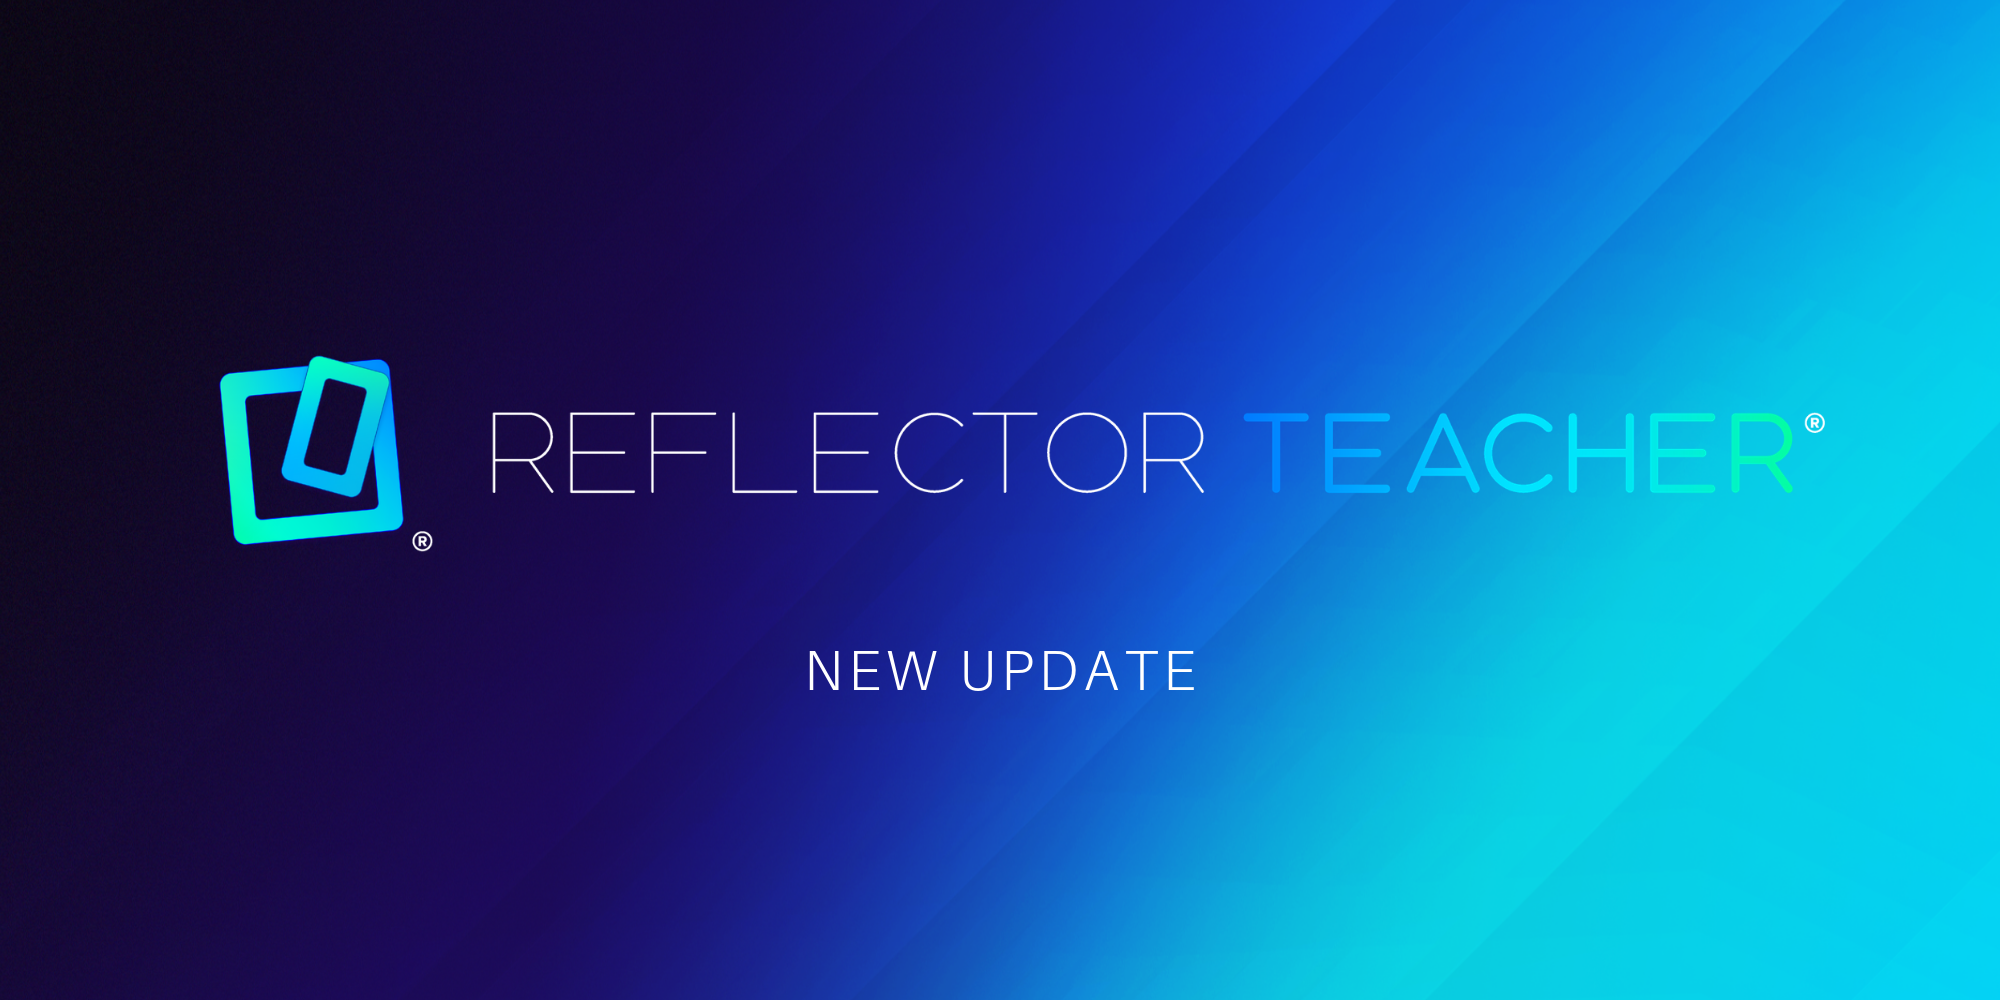 Reflector Teacher 3.2.1 Update Resolves macOS 10.15 Catalina Issues